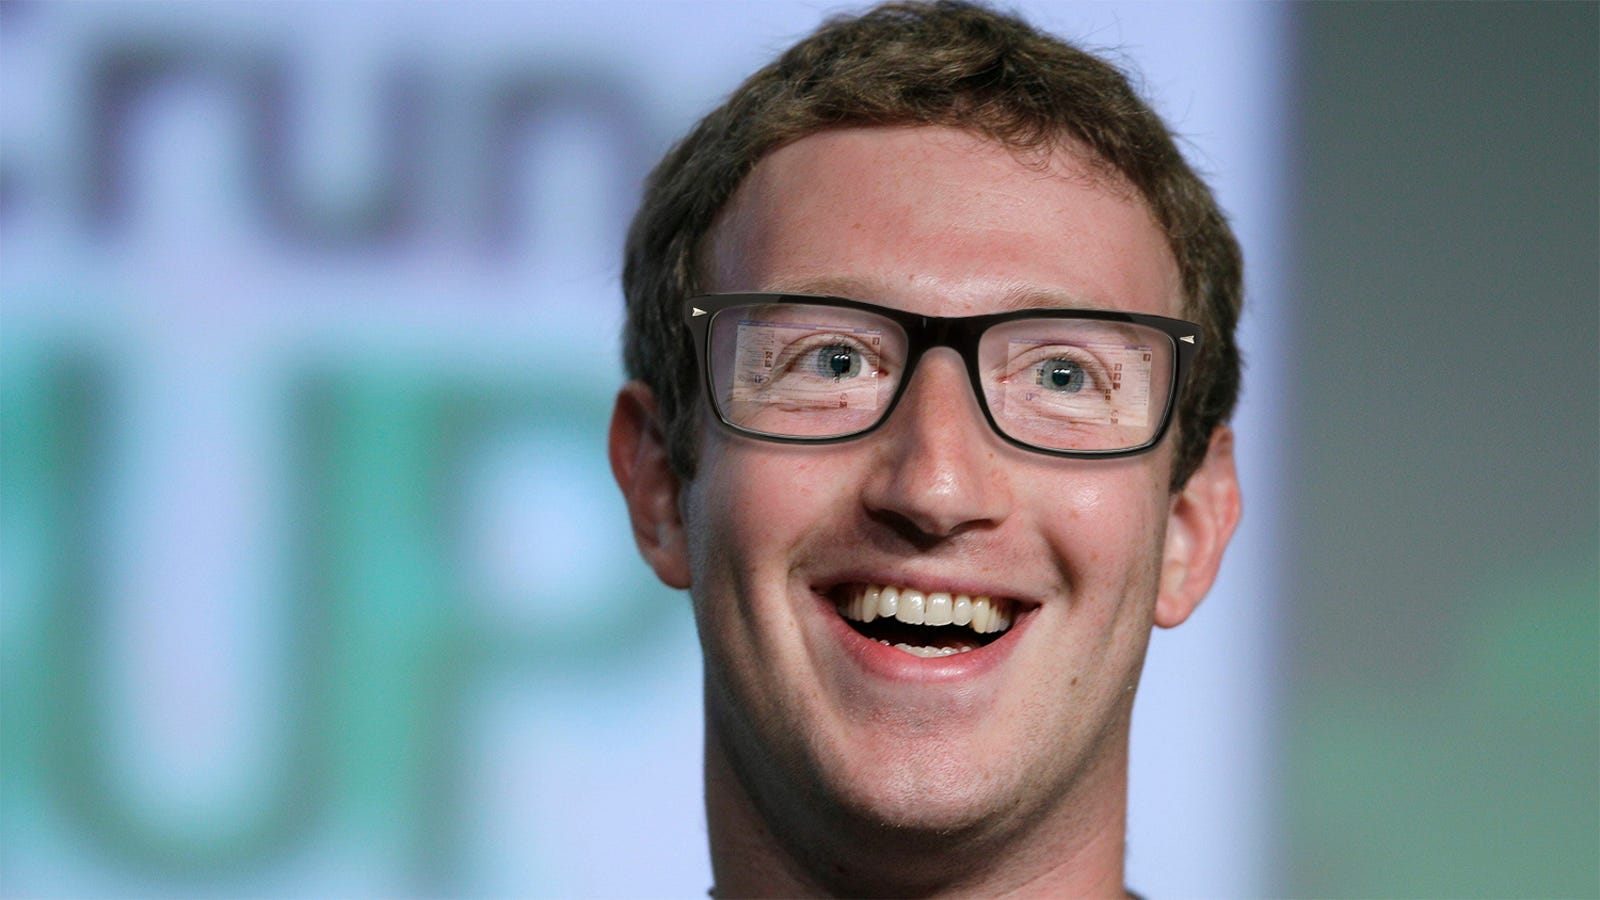 Facebook Partners With Ray-Ban to Help Make Its Smart Glasses Happen: Report